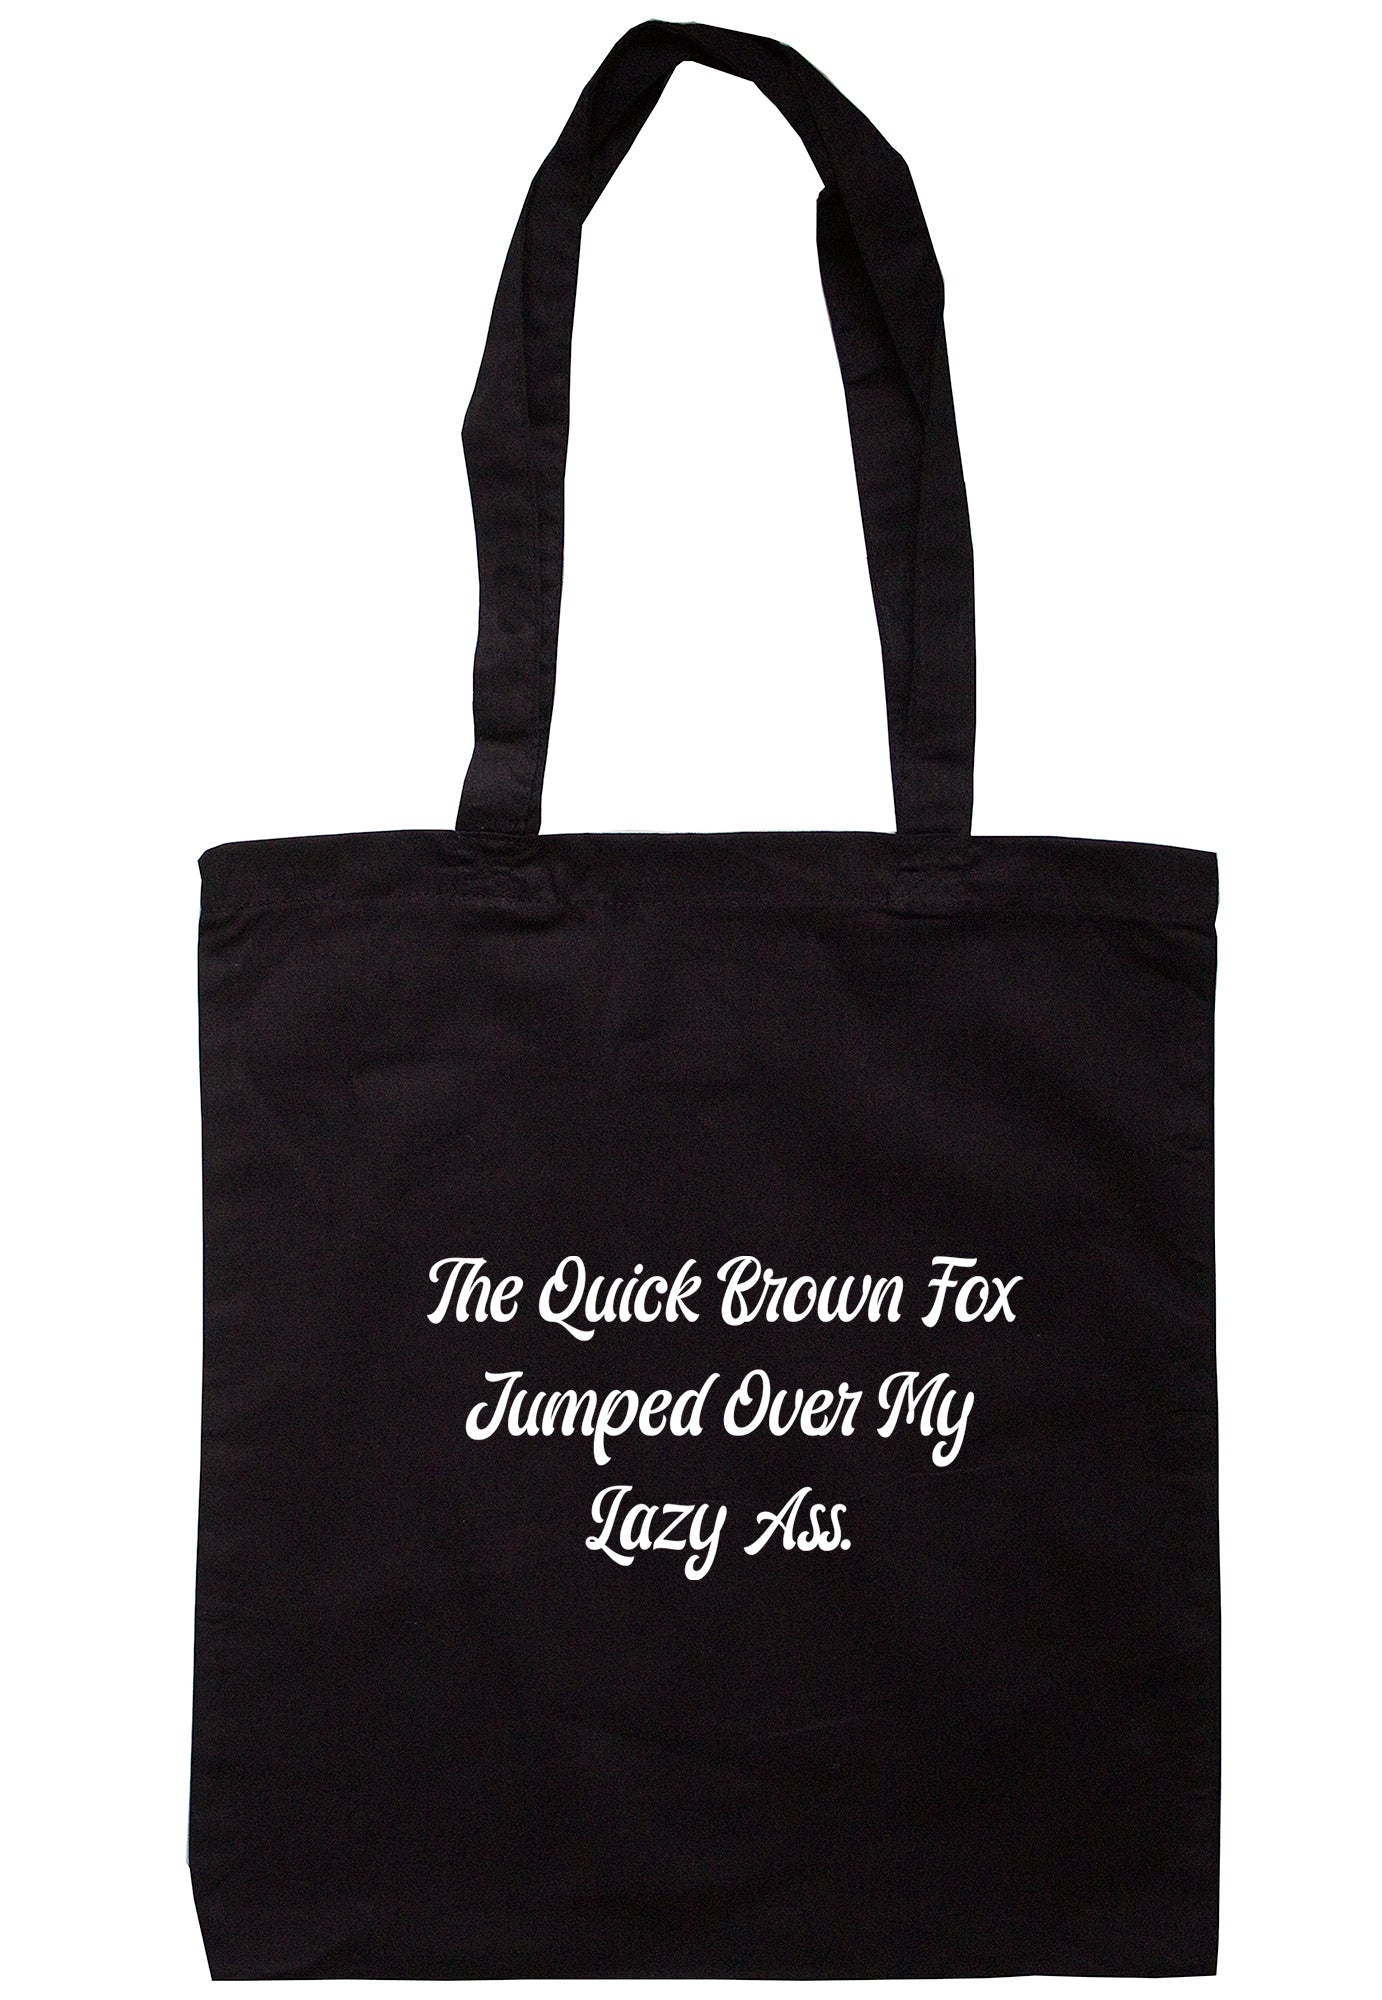 The Quick Brown Fox Jumped Over My Lazy Ass Tote Bag S1149 - Illustrated Identity Ltd.